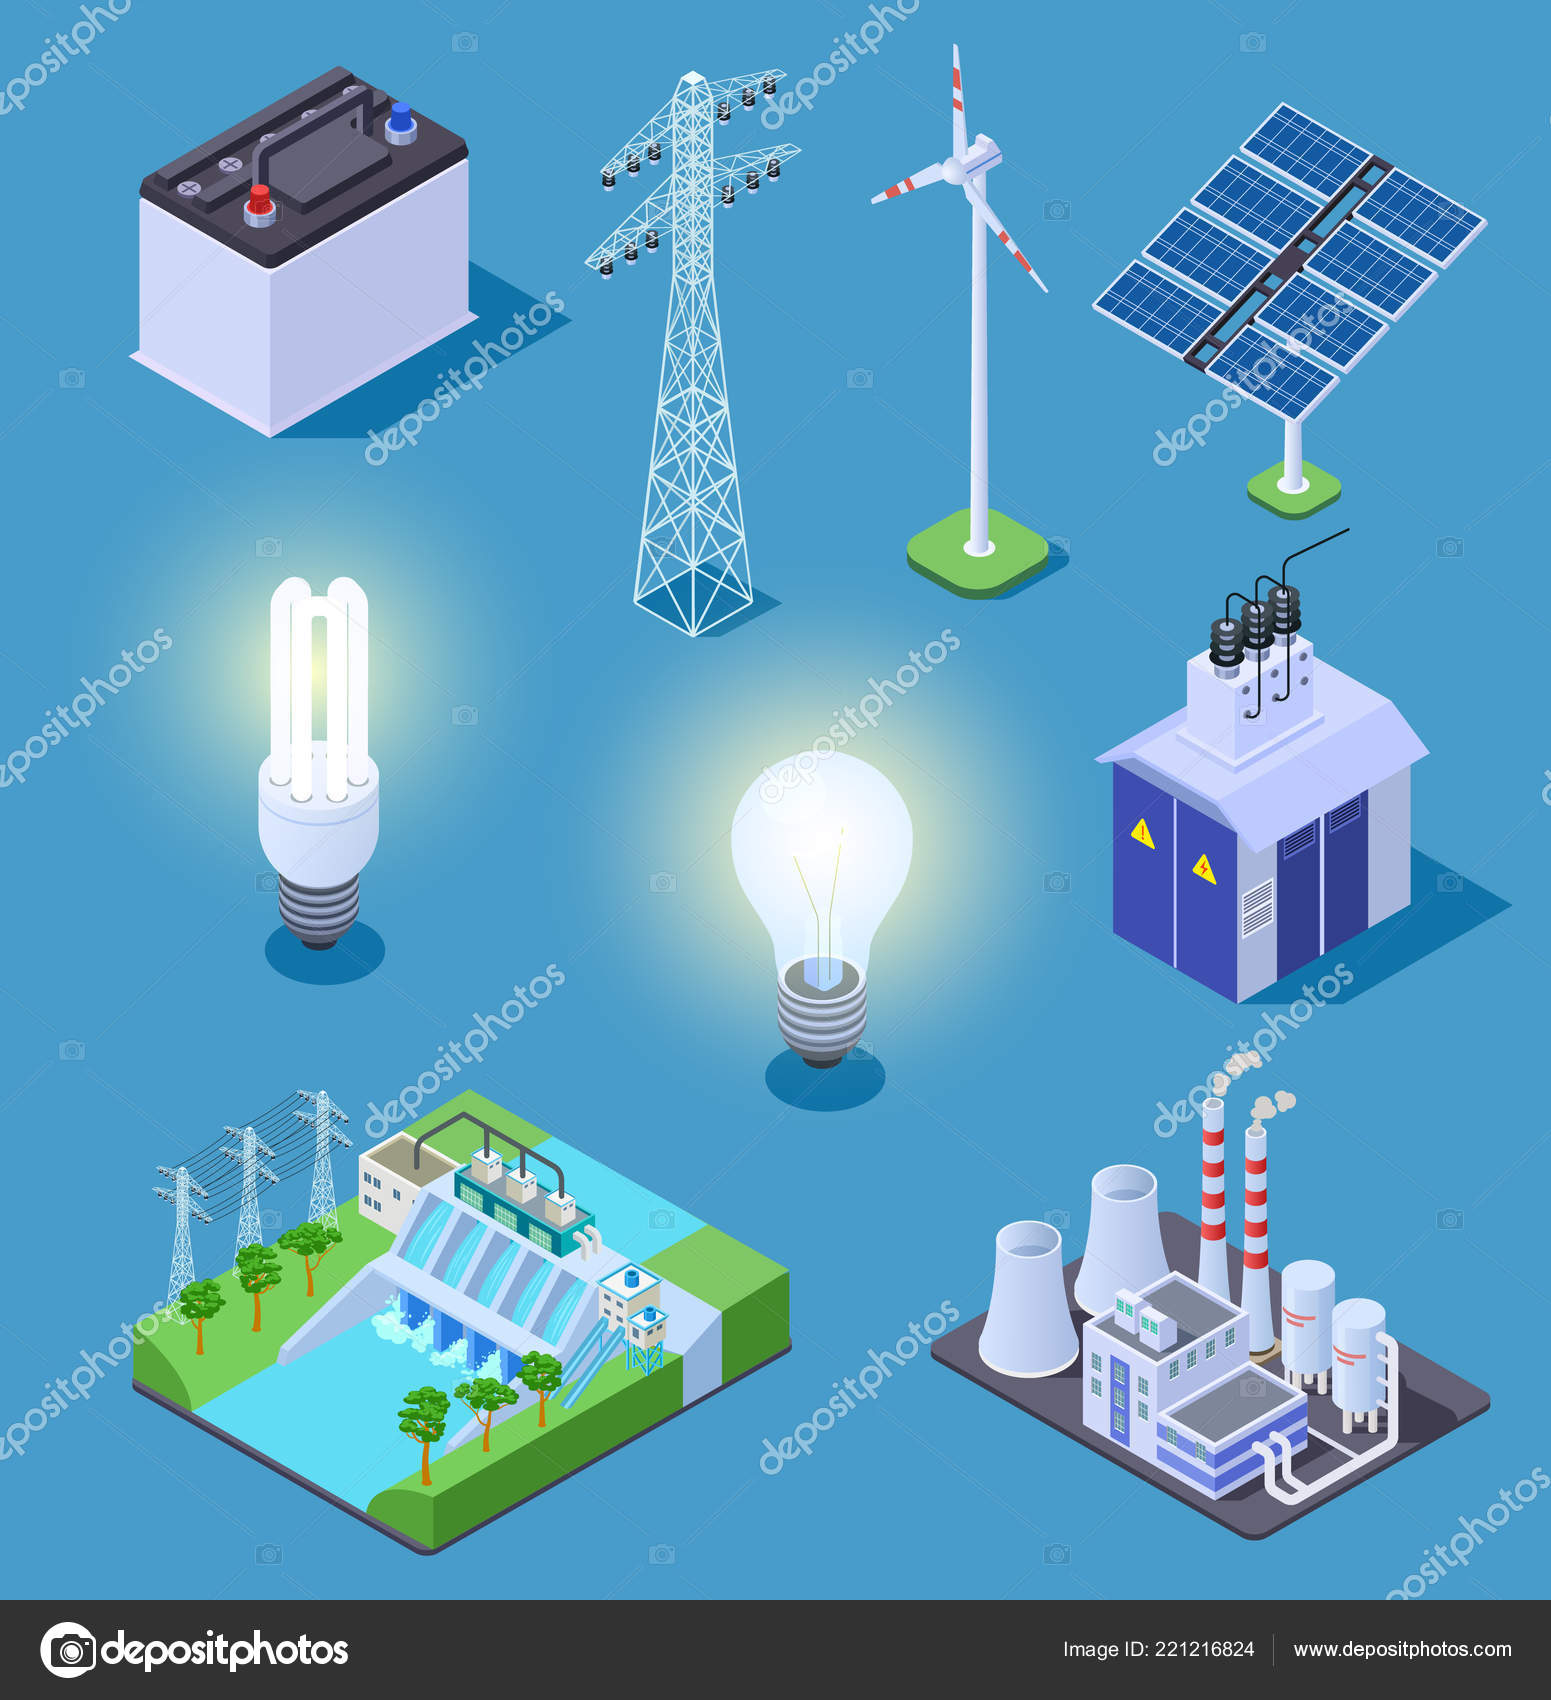 Electric power isometric icons. Energy generator, solar panels and on electrical power bar, circuit breaker, electrical power extender, wiring diagram, junction box, electrical room, electrical power gauge, electrical power transformer, electical panel, electrical power outlet, electrical power valve, electrical conduit, electrical power board, electrical power design, power cable, electrical spider box, electrical power socket, residual-current device, electrical panel sizes, three-phase electric power, electrical power controller, national electrical code, earthing system, maintenance panel, consumer unit, electricity distribution, electrical equipment, electrical power bus, electrical power wheel, ground and neutral, ring circuit, electrical power meter, earth leakage circuit breaker, electrical wiring, electricity meter, electrical power system, electrical power sensor,